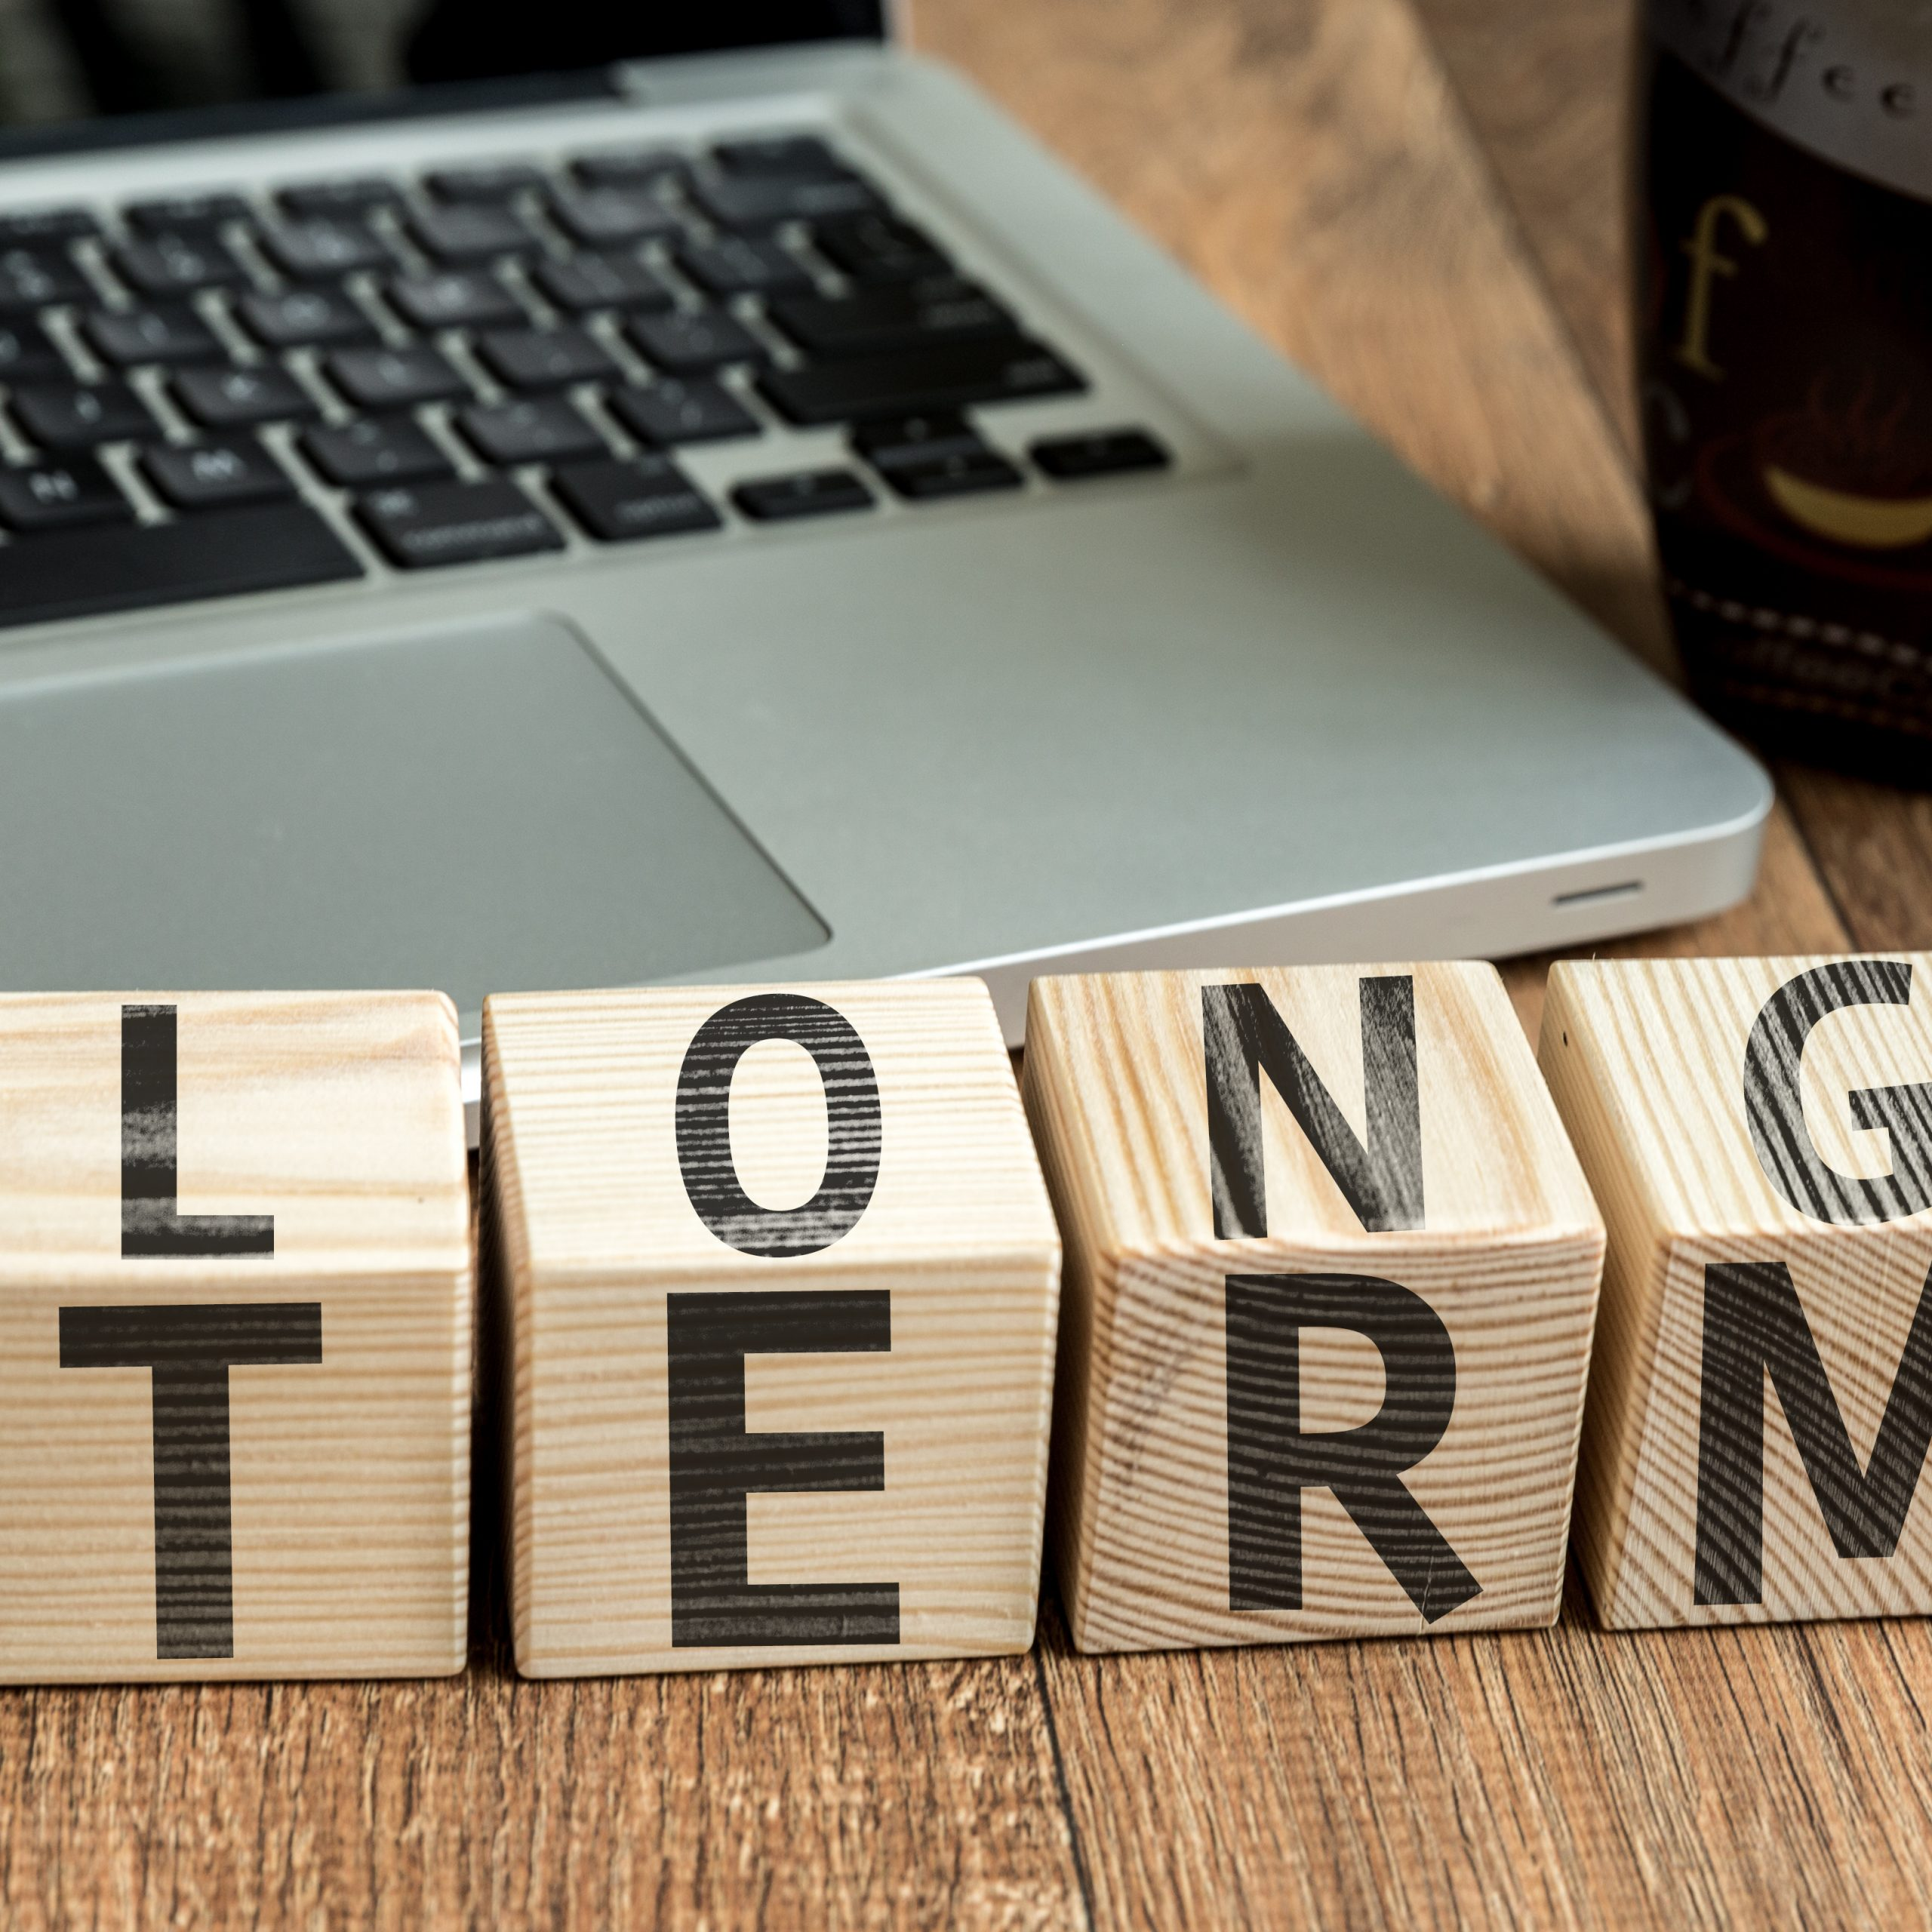 investments long-term financial planning and investment management